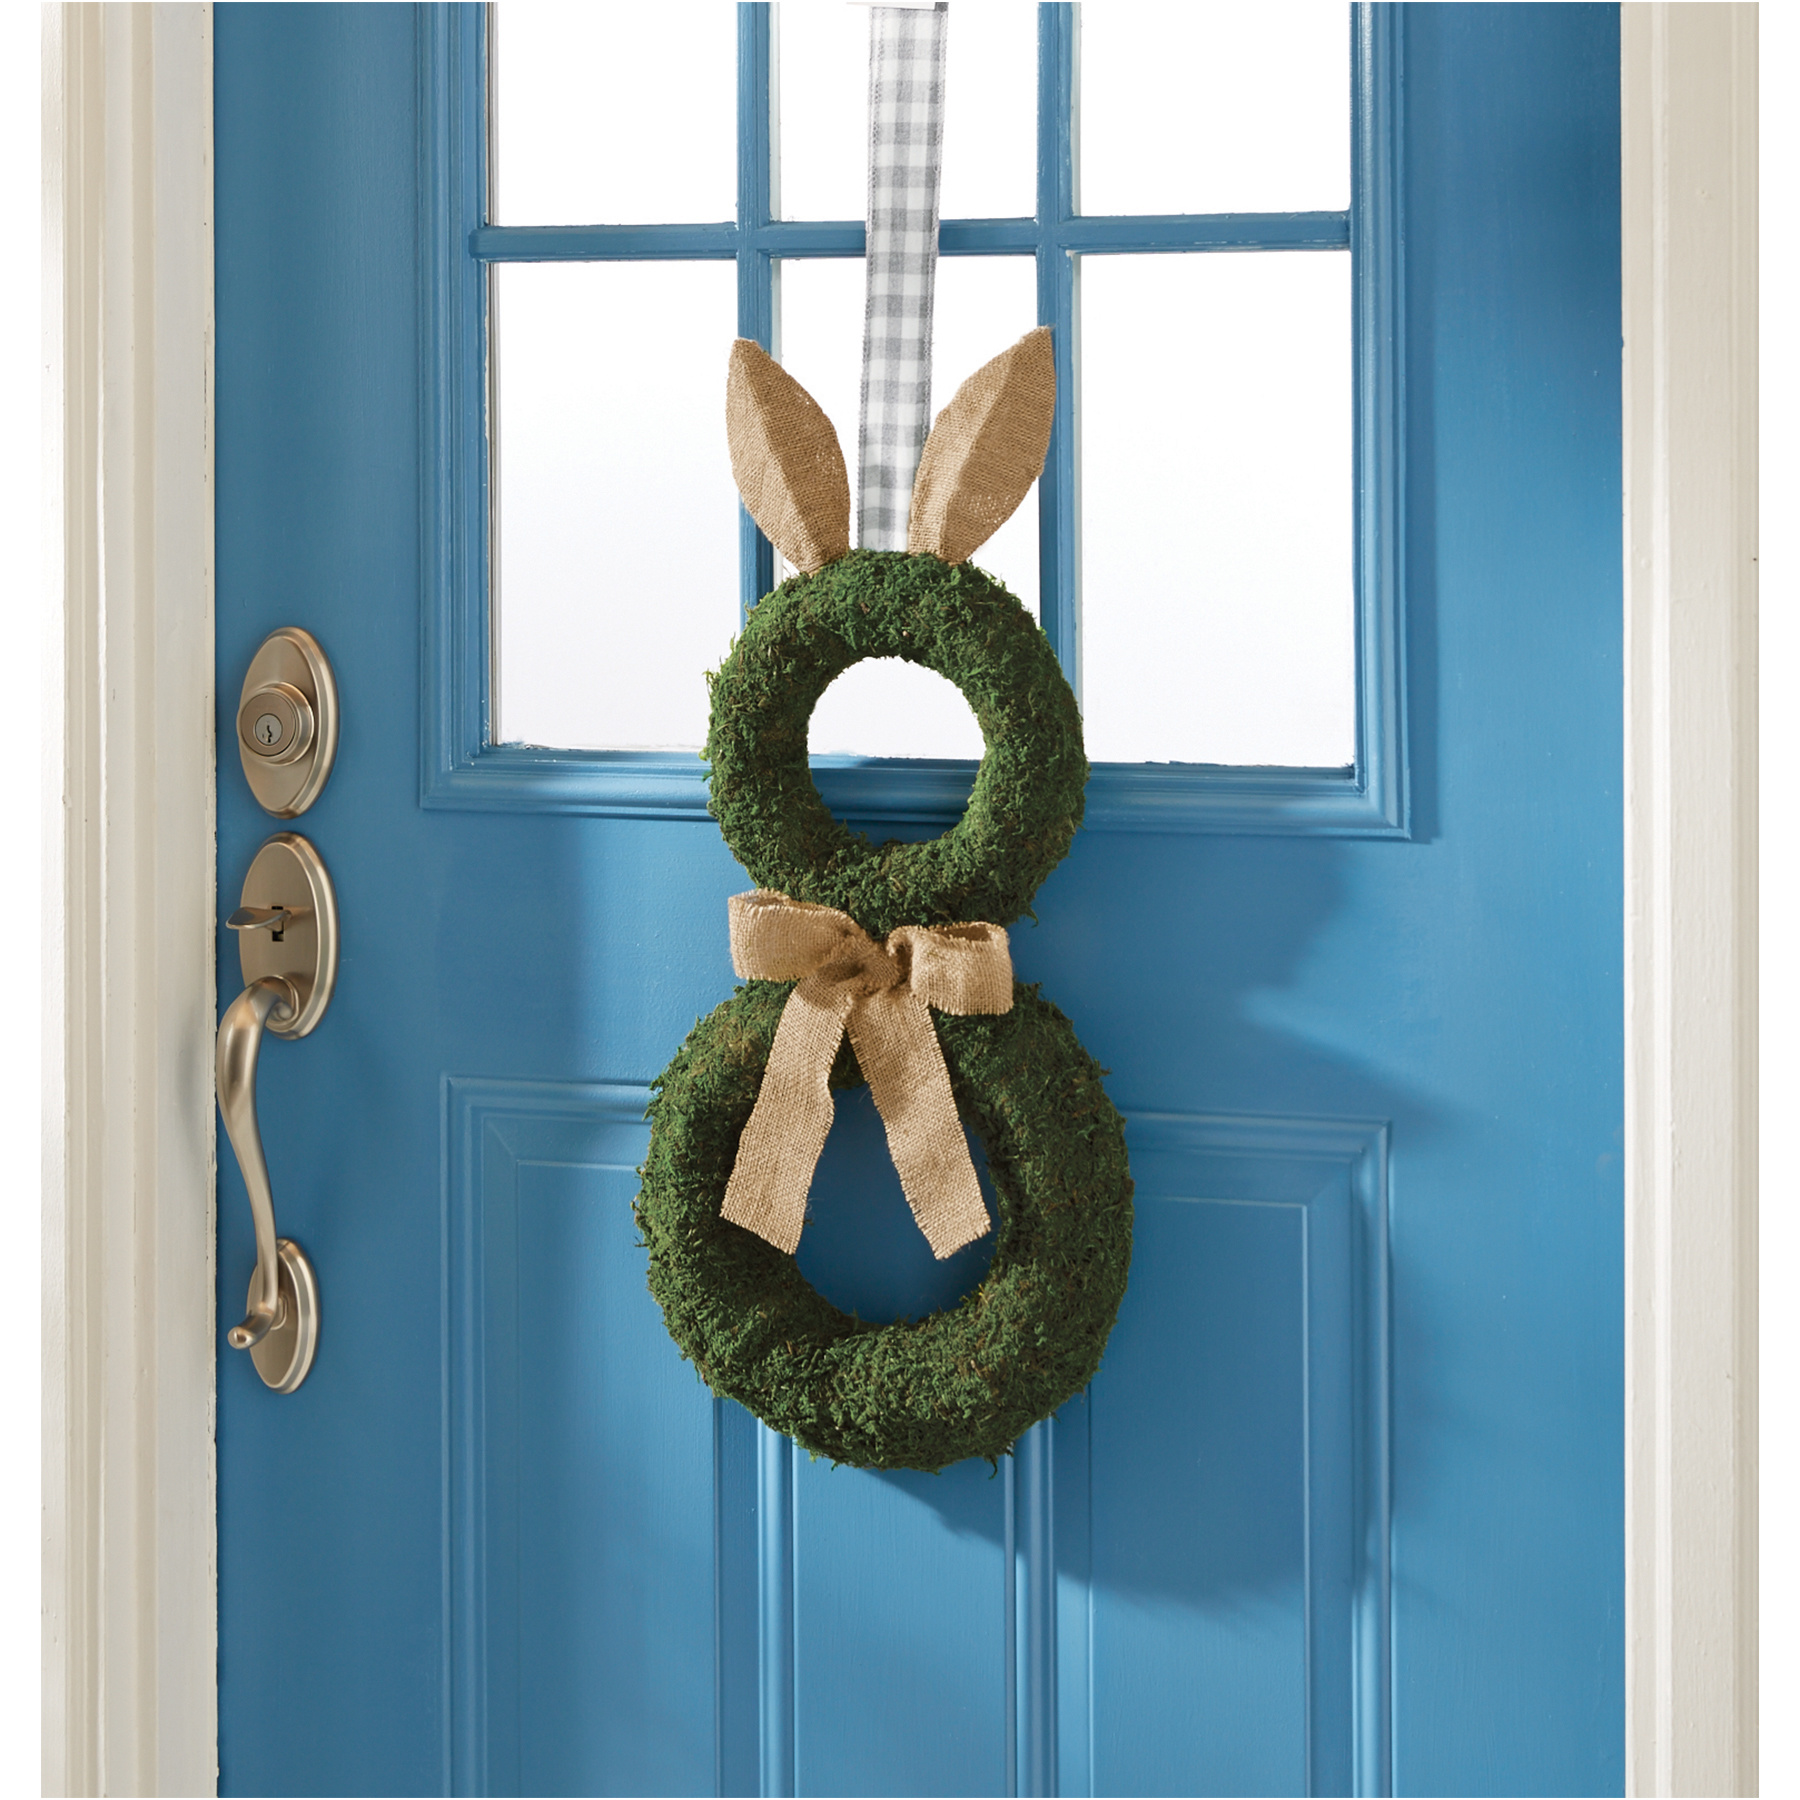 Mud Pie Preserved moss bunny hanger